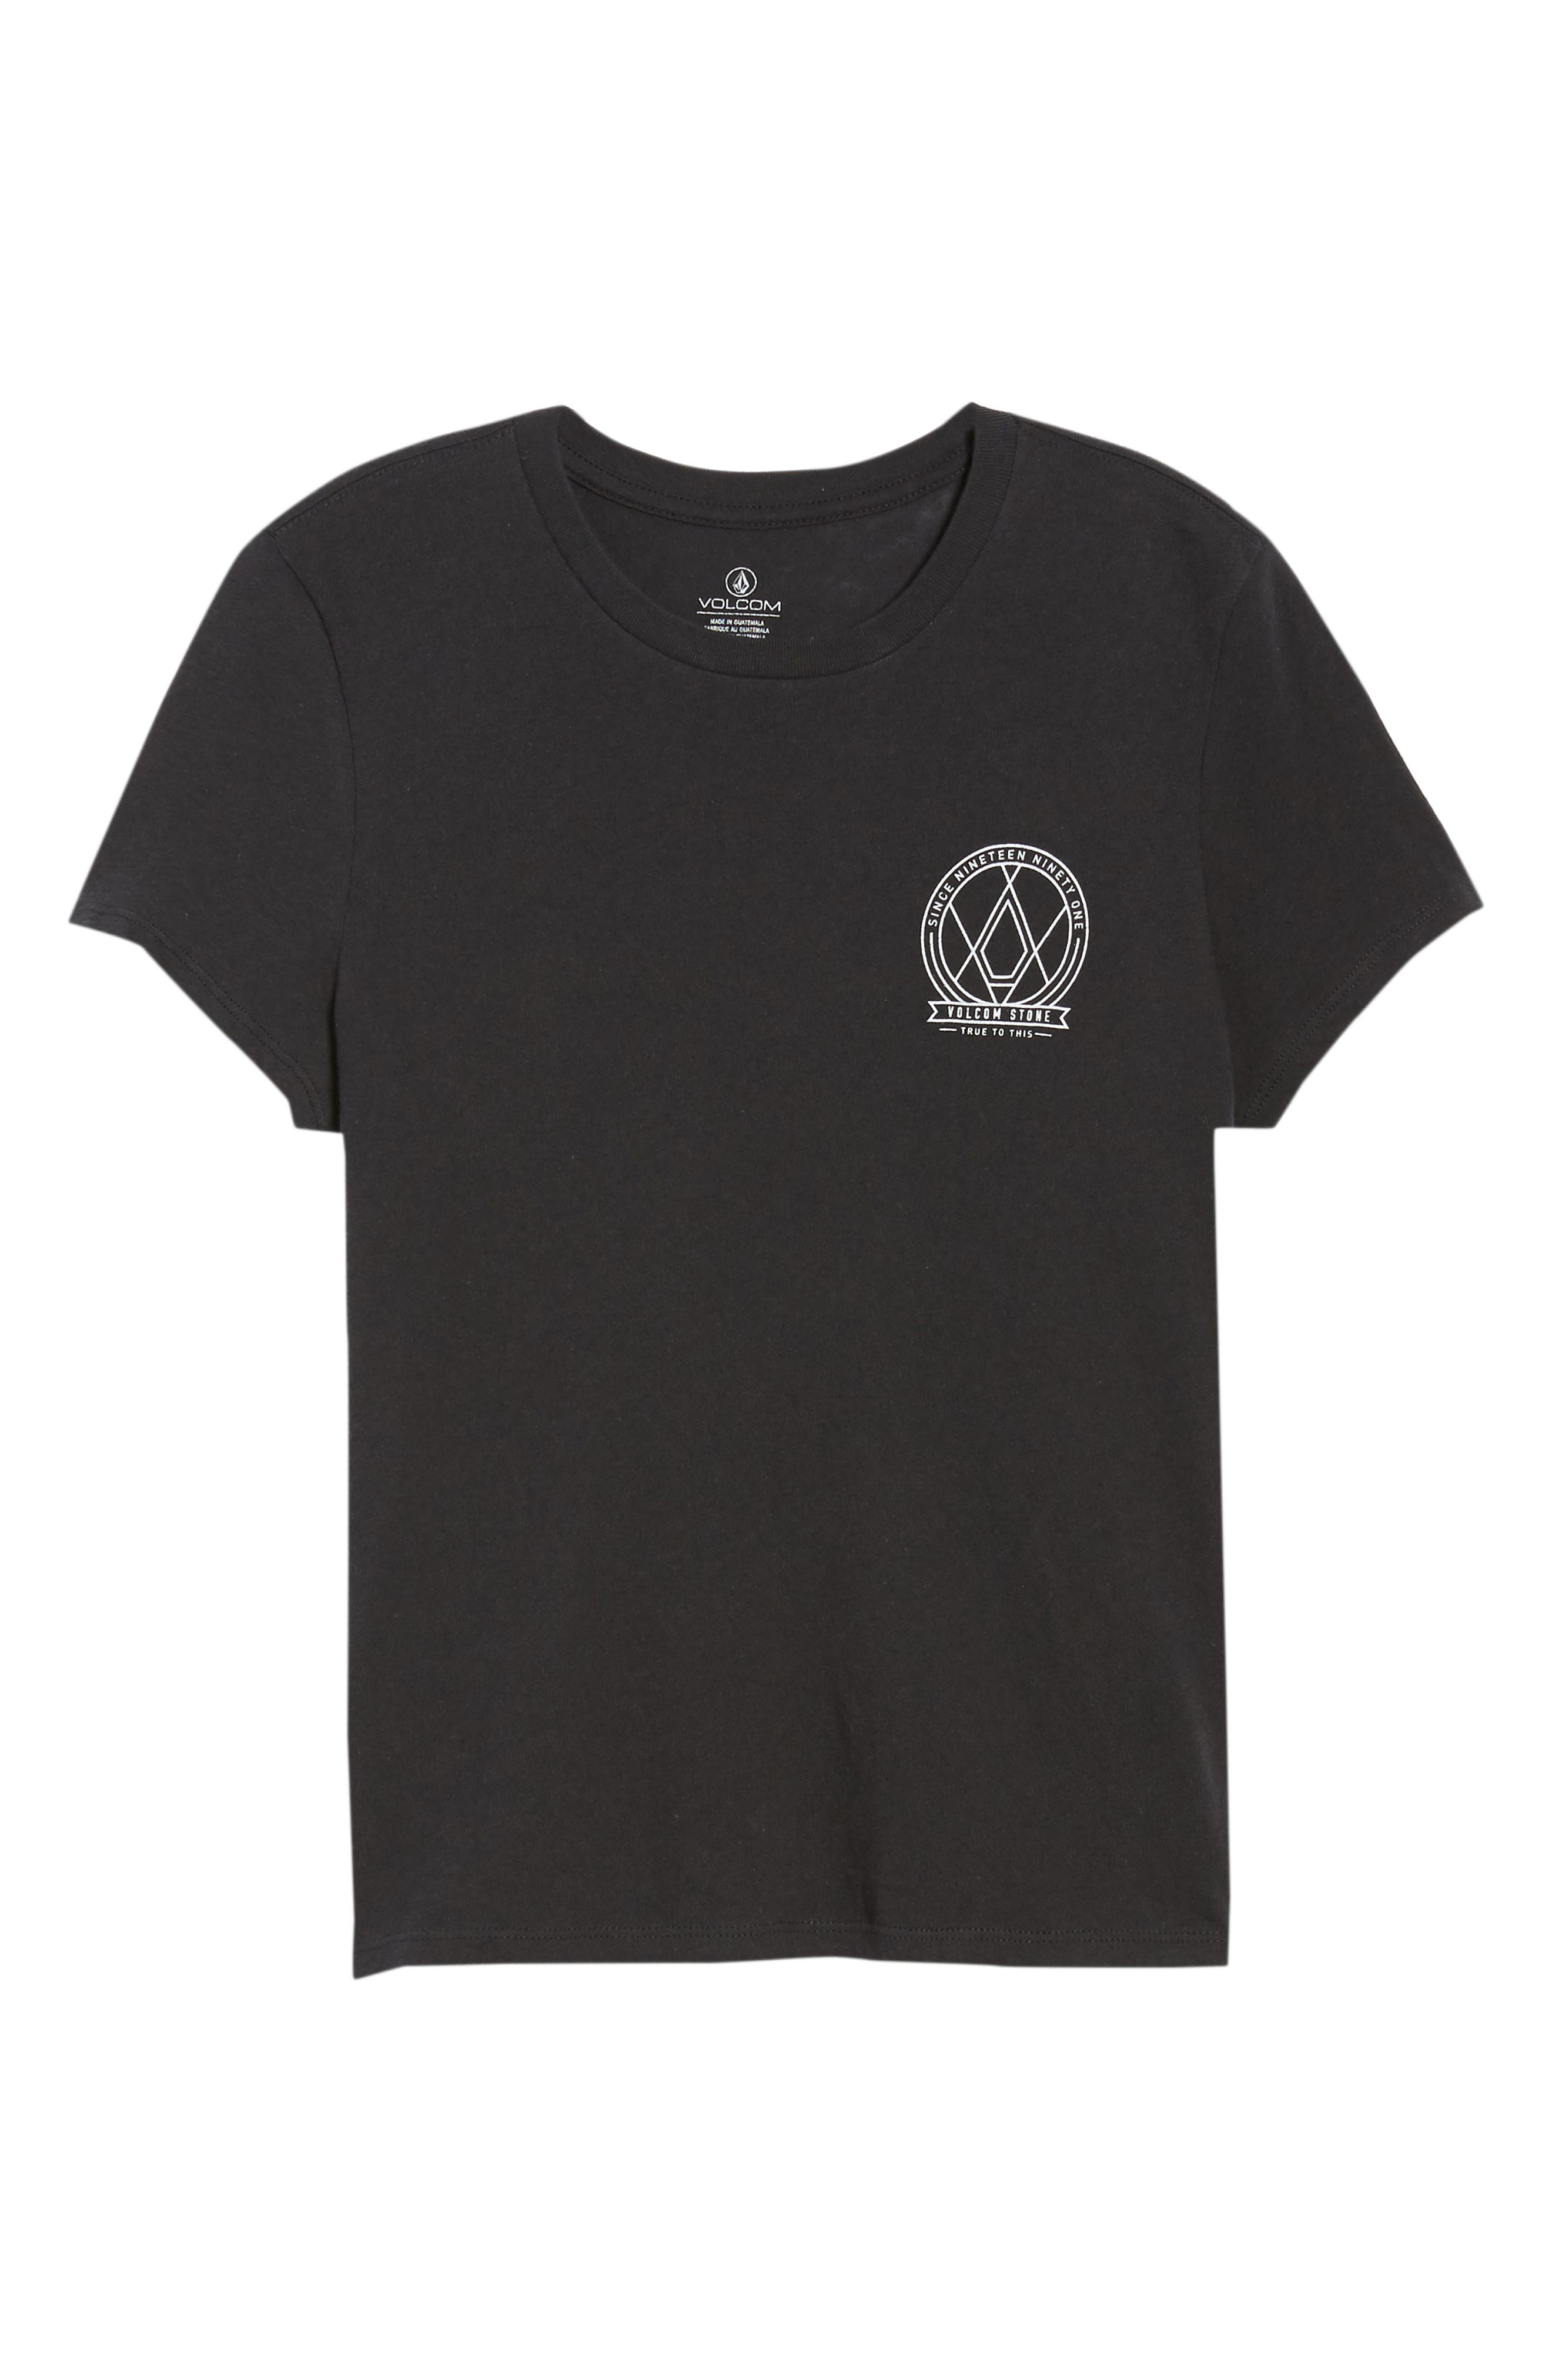 Day Everyday Tee,                             Alternate thumbnail 7, color,                             Black